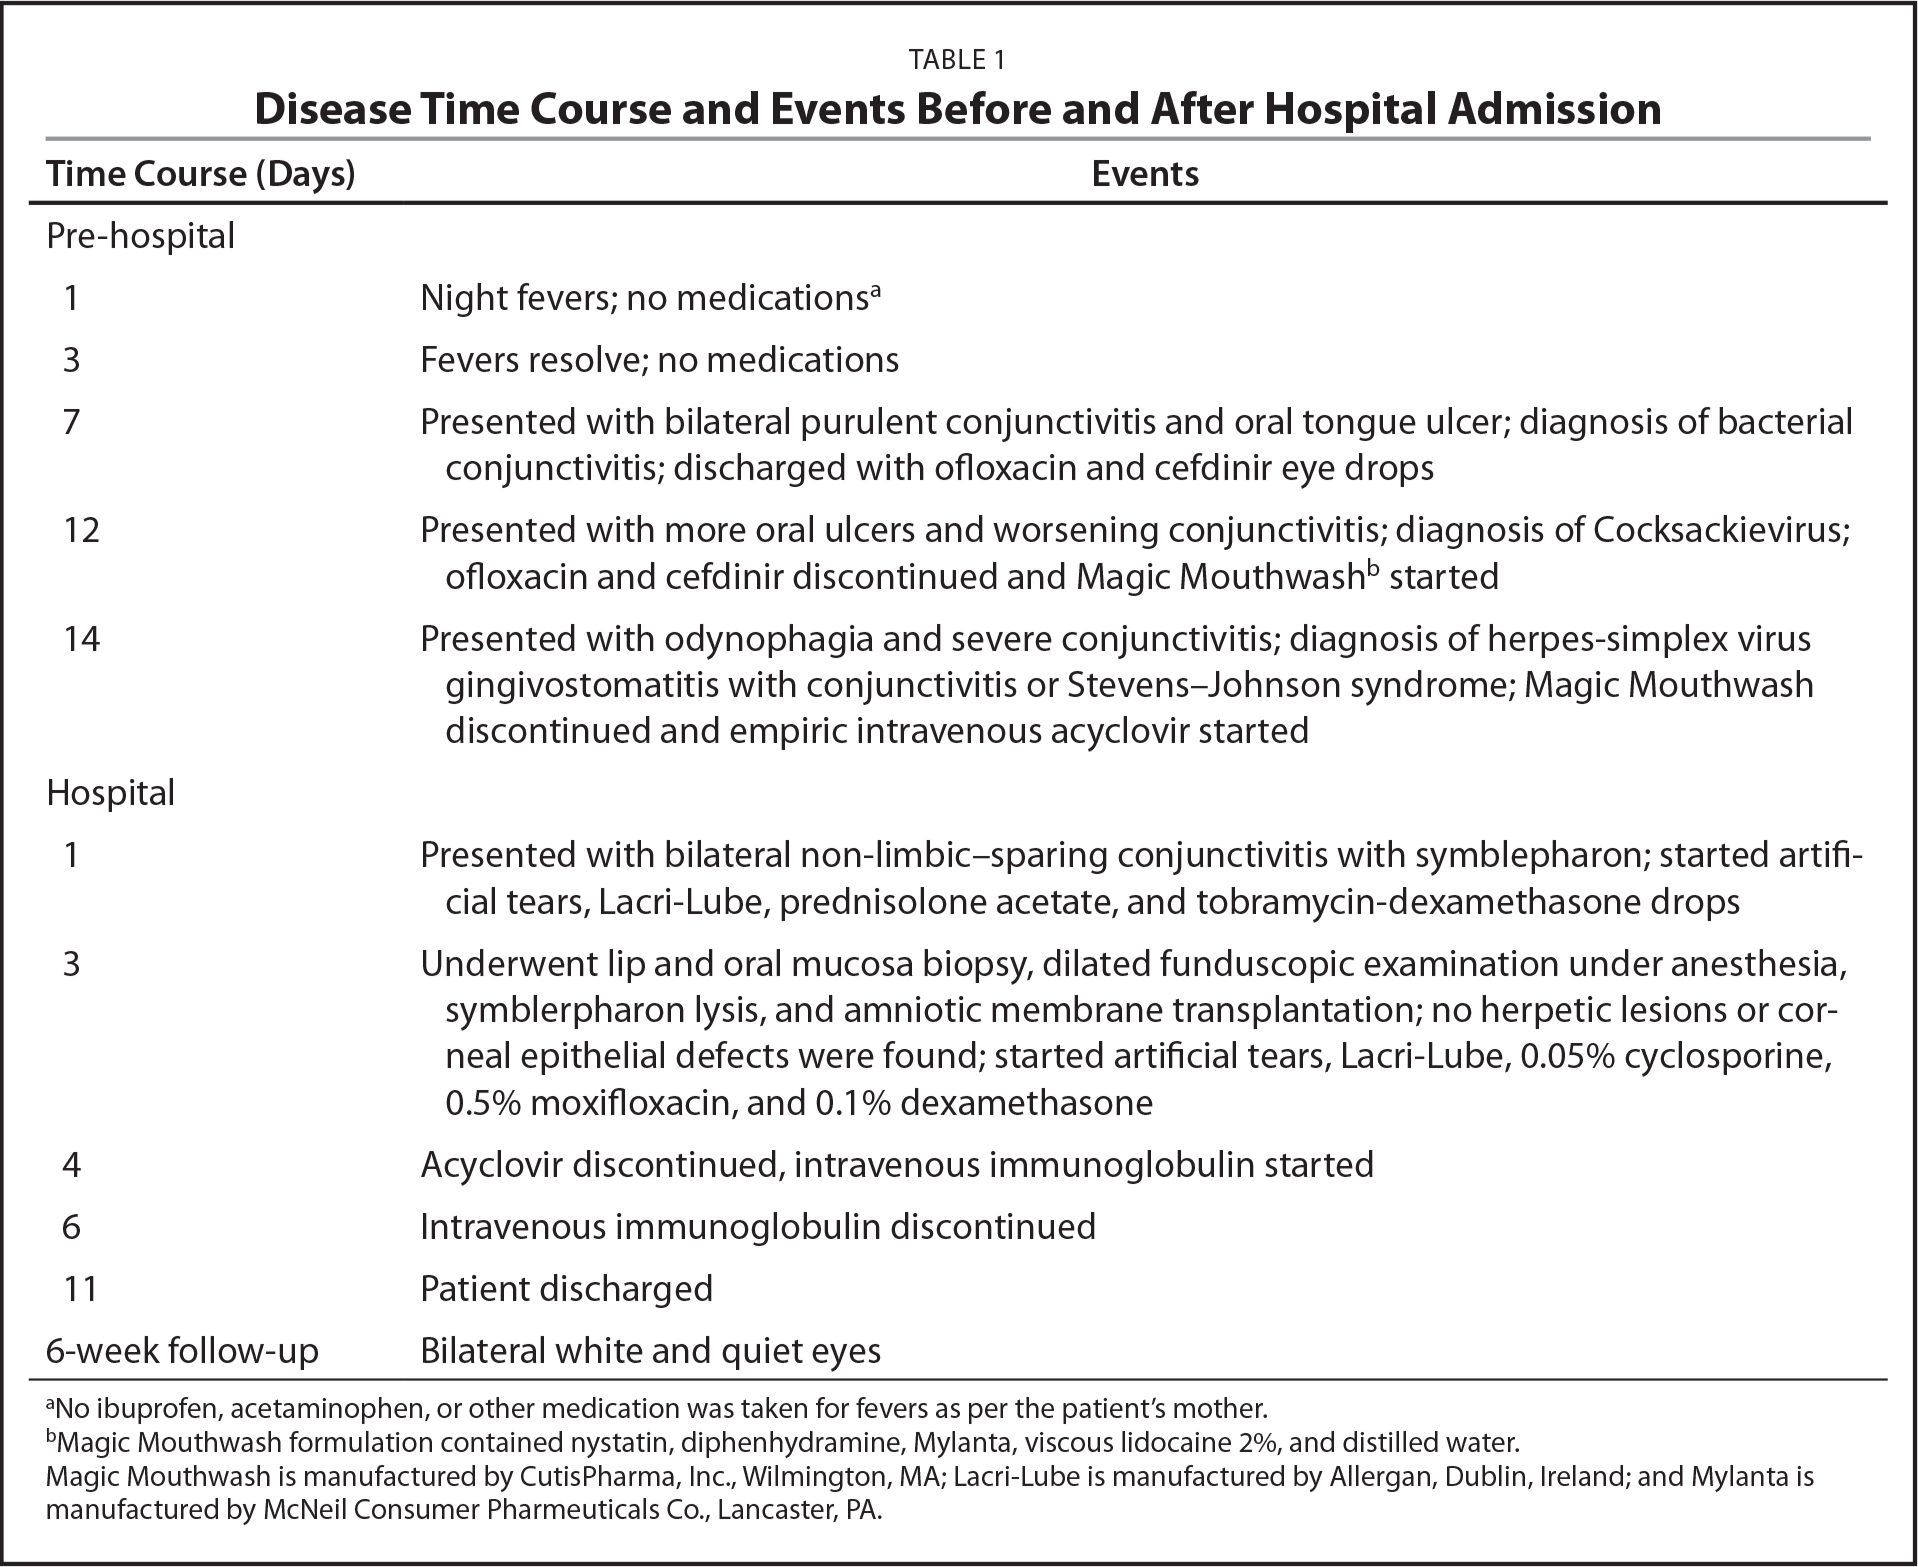 Disease Time Course and Events Before and After Hospital Admission